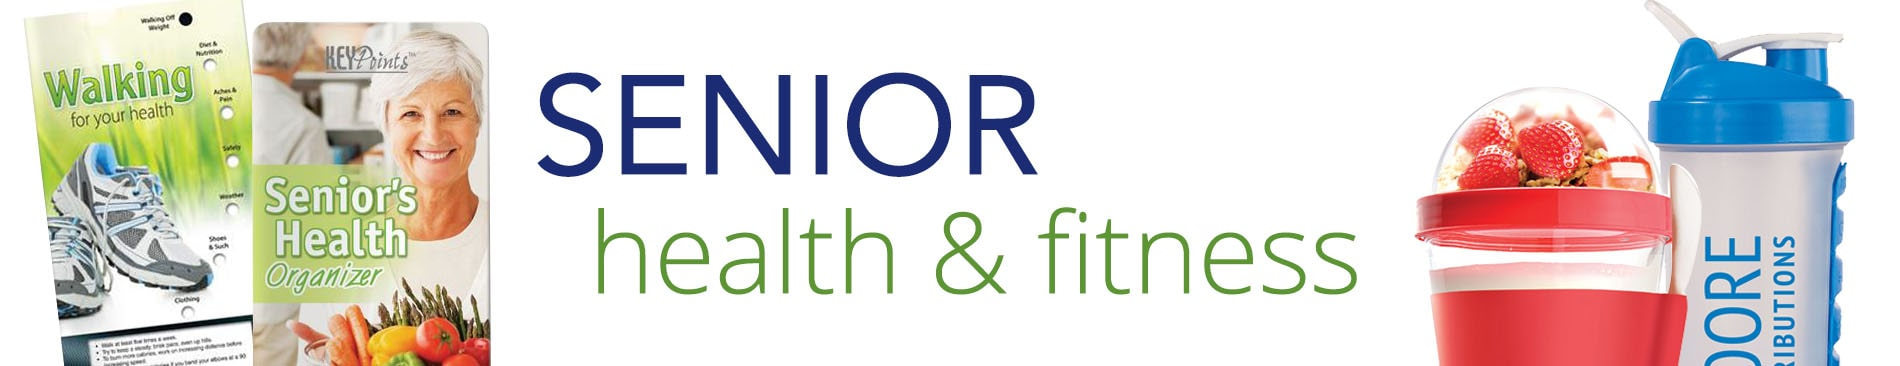 health fair ideas for seniors